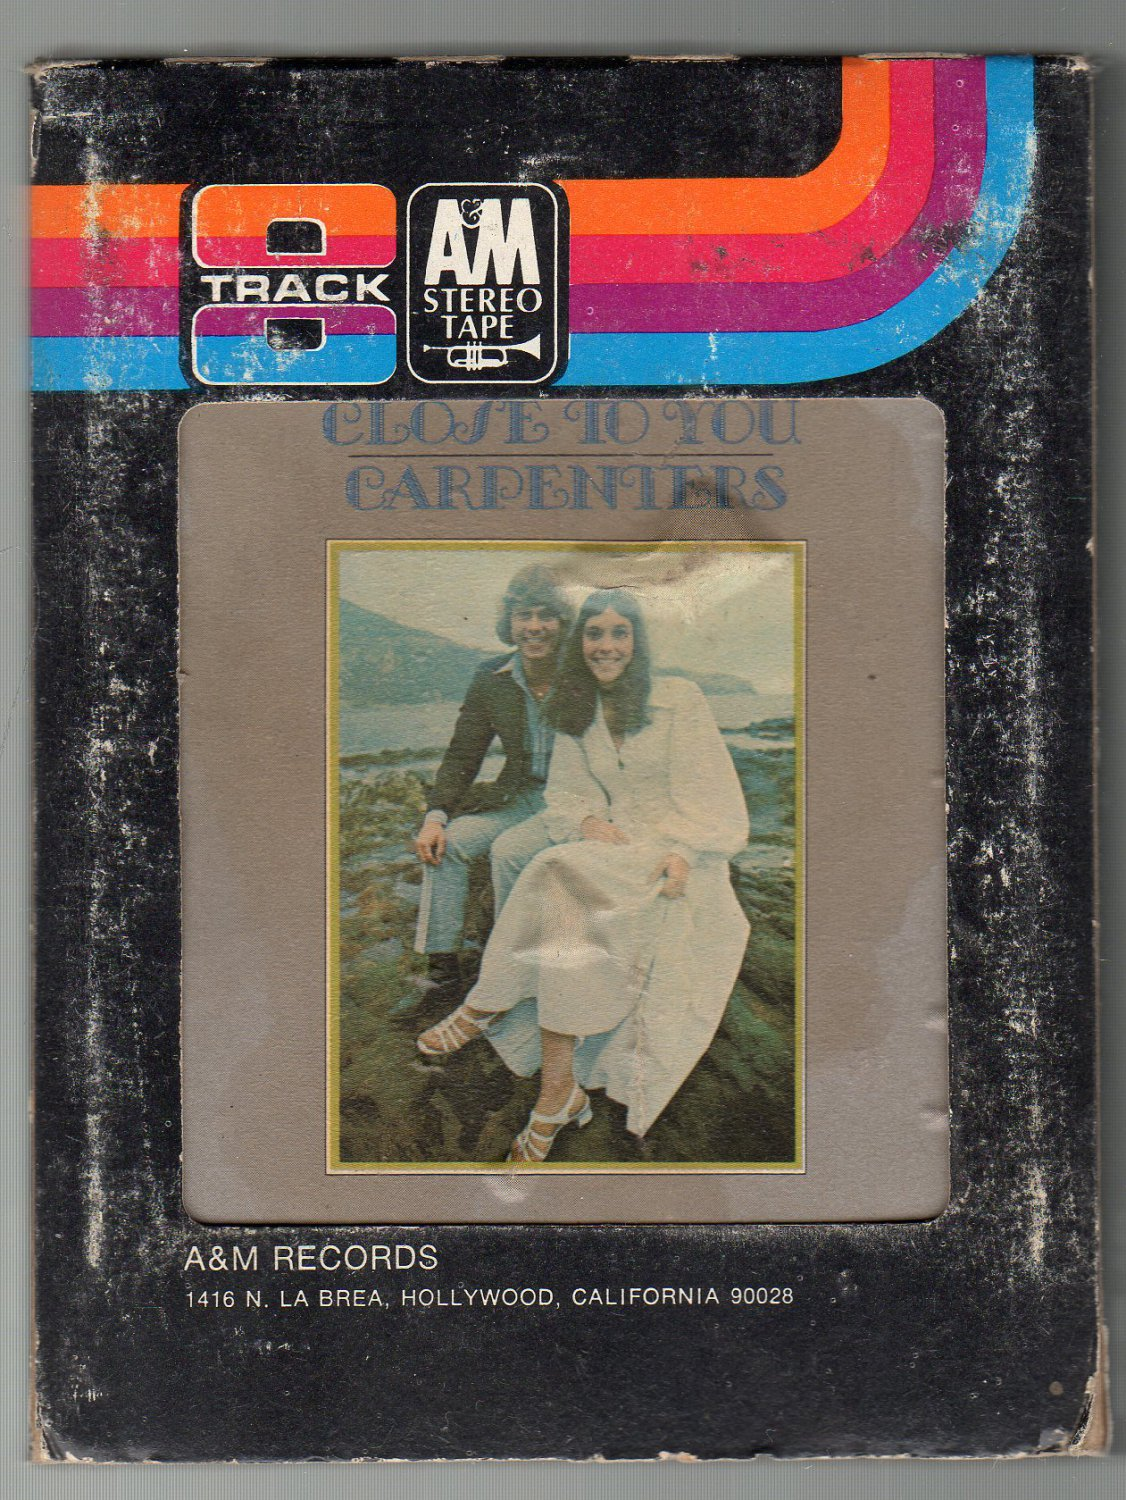 The Carpenters - Close To You 8-track tape